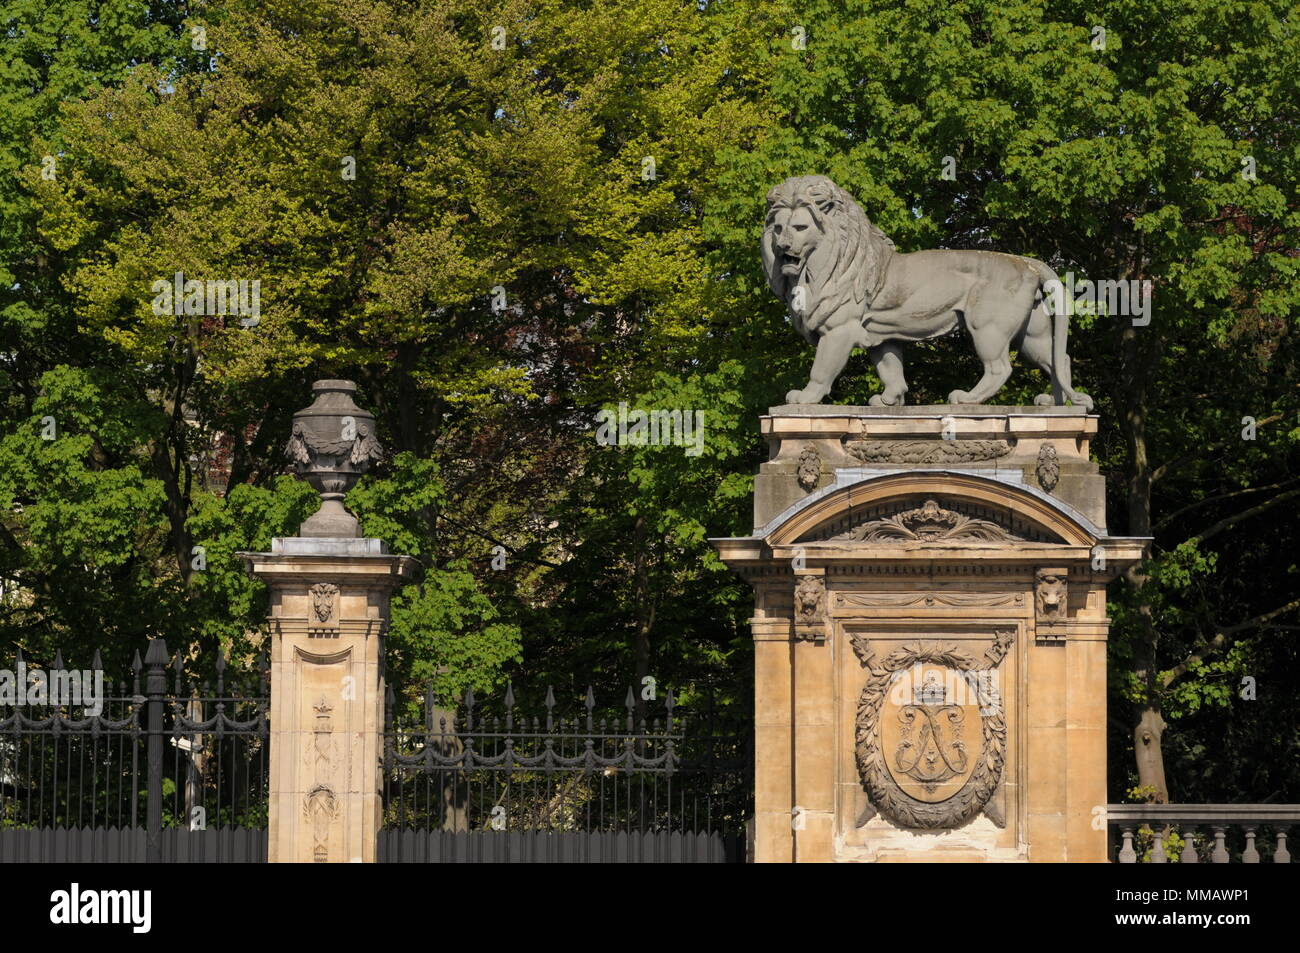 A Lion sculpture guarding entrance to the Royal Palace in Brussels - Stock Image